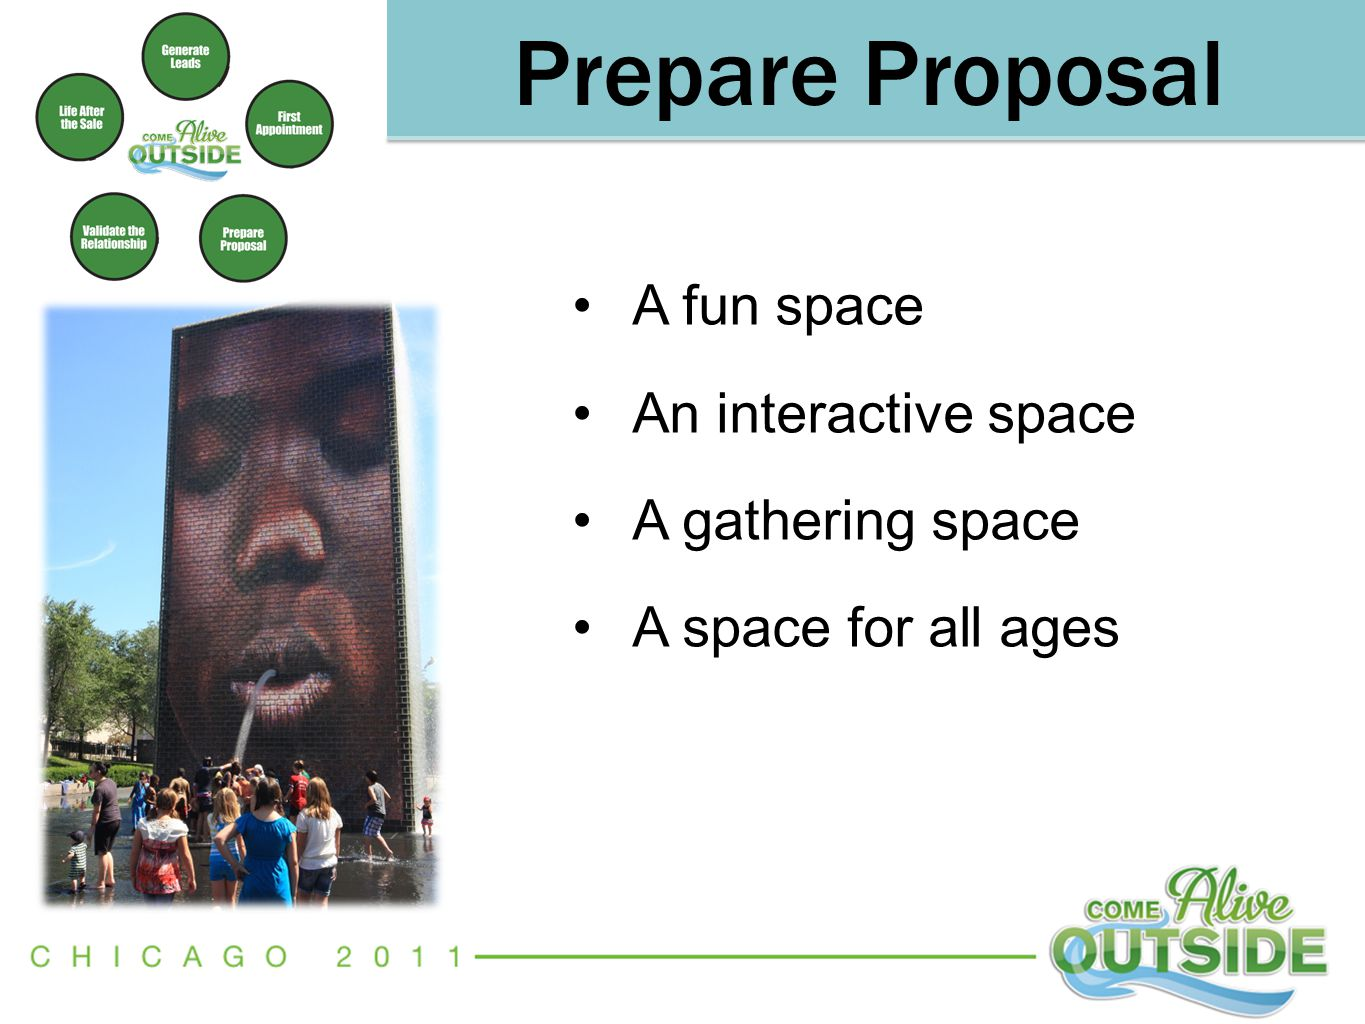 Prepare Proposal A fun space An interactive space A gathering space A space for all ages